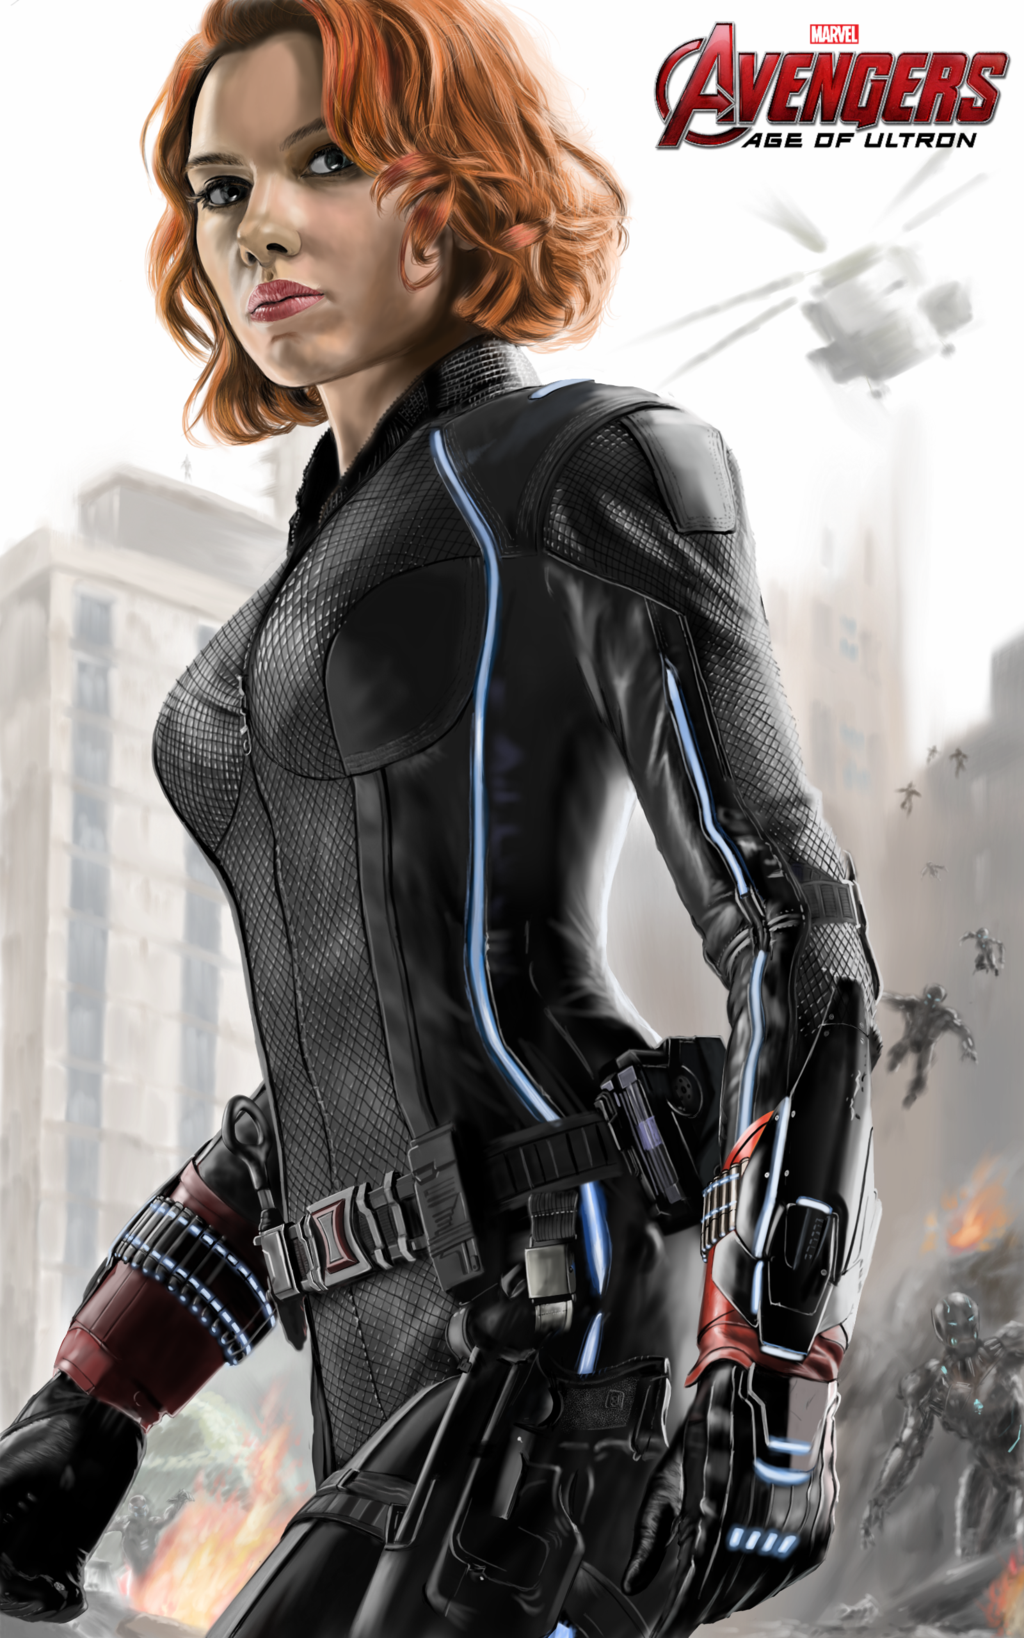 Avengers Age Of Ultron By Iloegbunam On Deviantart: Avengers Age Of Ultron Black Widow By Billycsk.deviantart